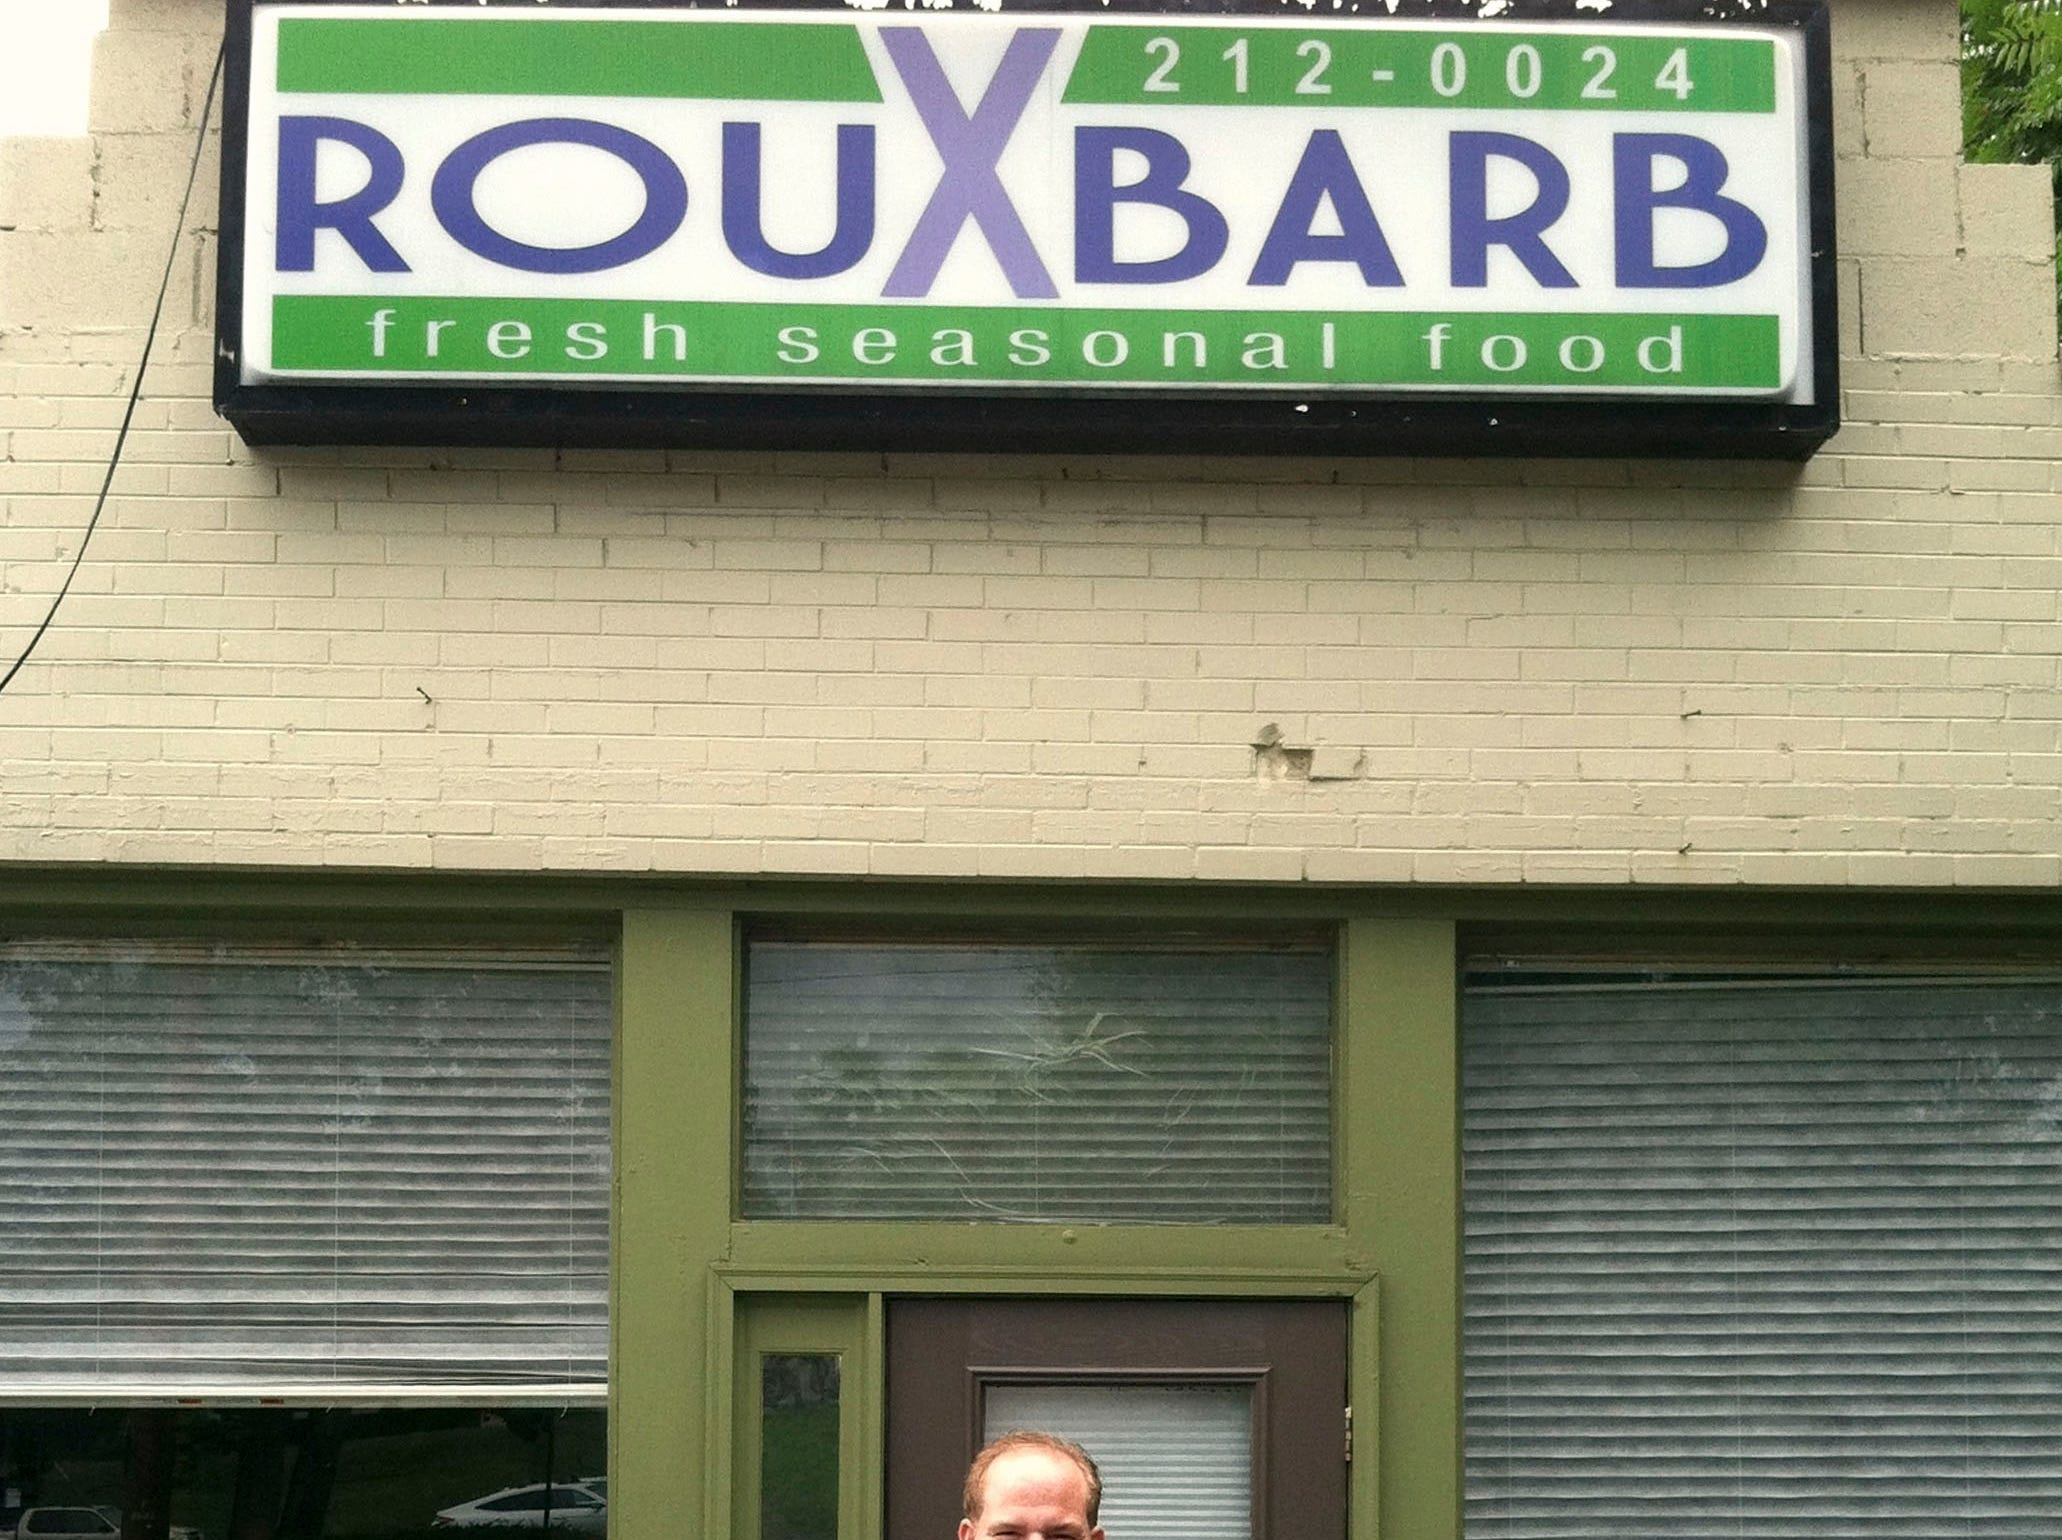 Bruce Bogartz, executive chef and owner of RouXbarb, stands in front of his restaurant at 130 South Northshore Dr. in Knoxville in 2012.